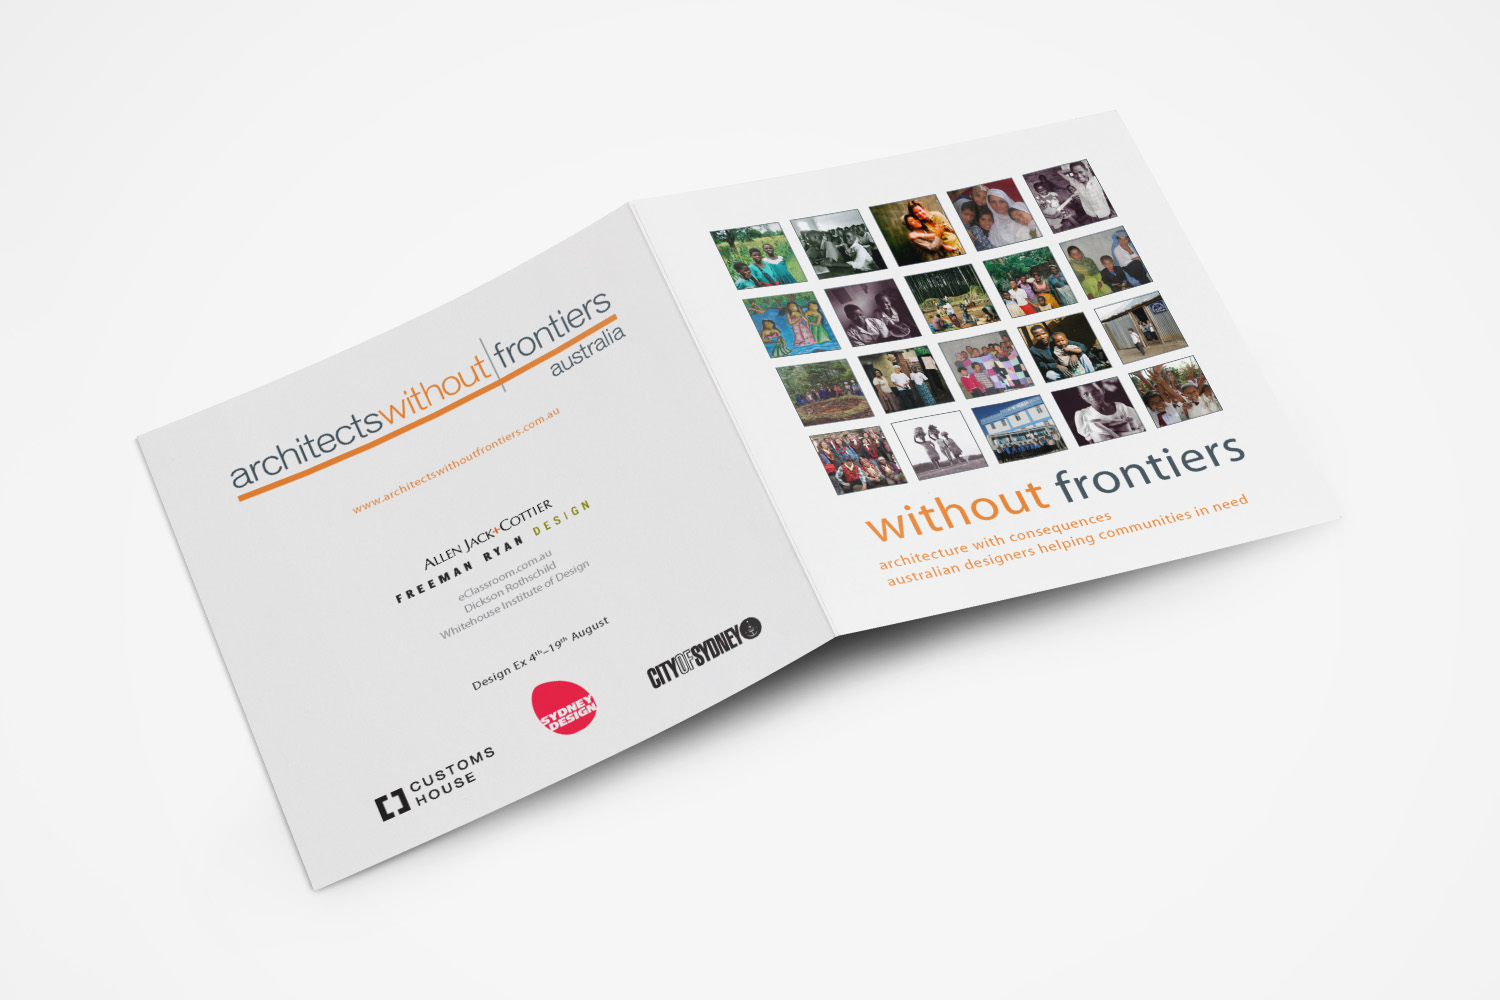 FRD-WithoutFrontiers-Graphics-Invitation-1.jpg